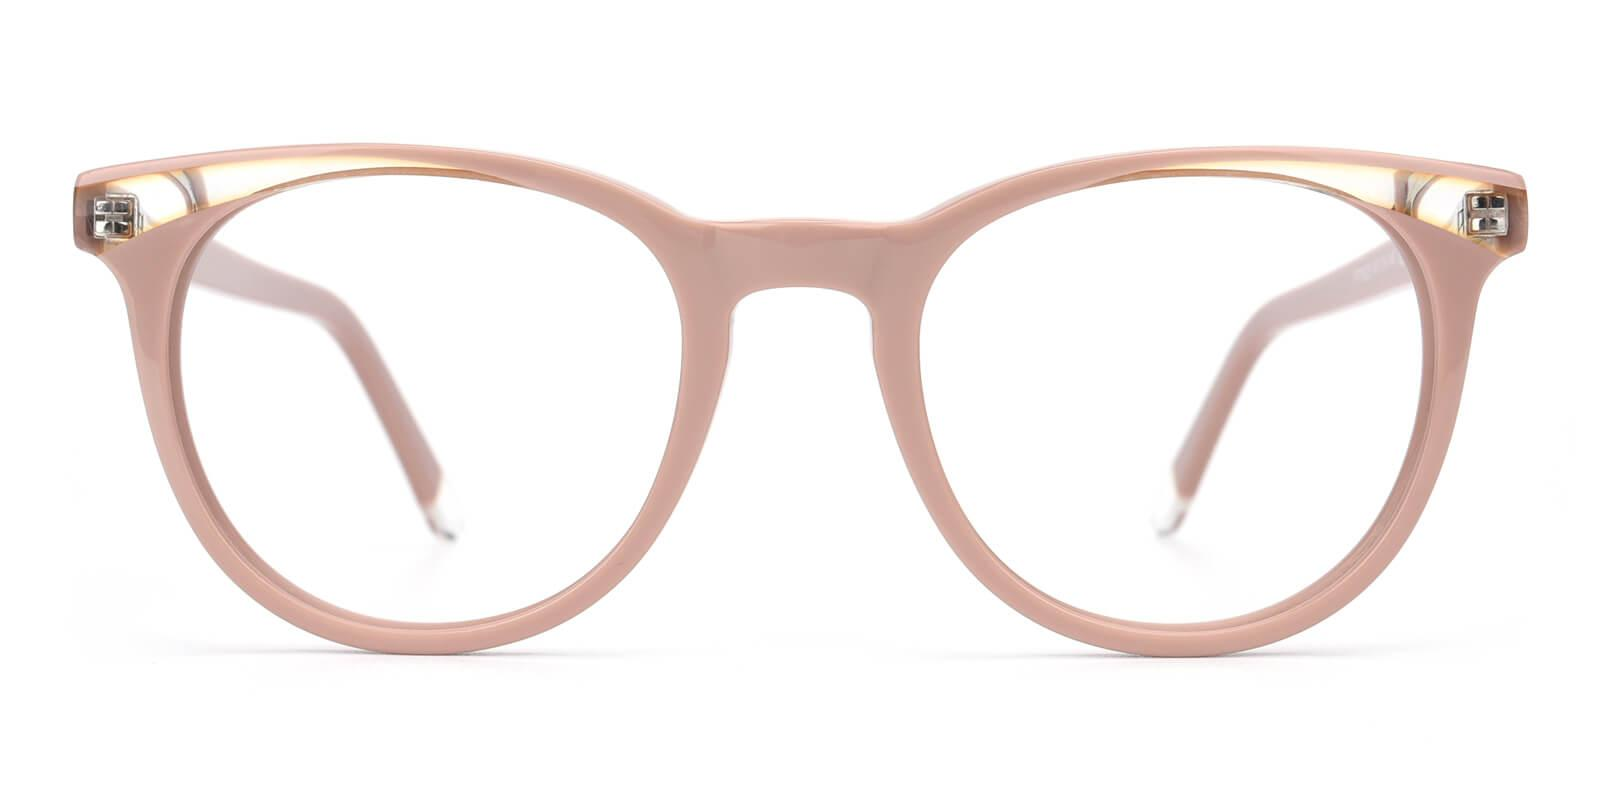 Clementine-Cream-Oval / Cat-Acetate-Eyeglasses-additional2